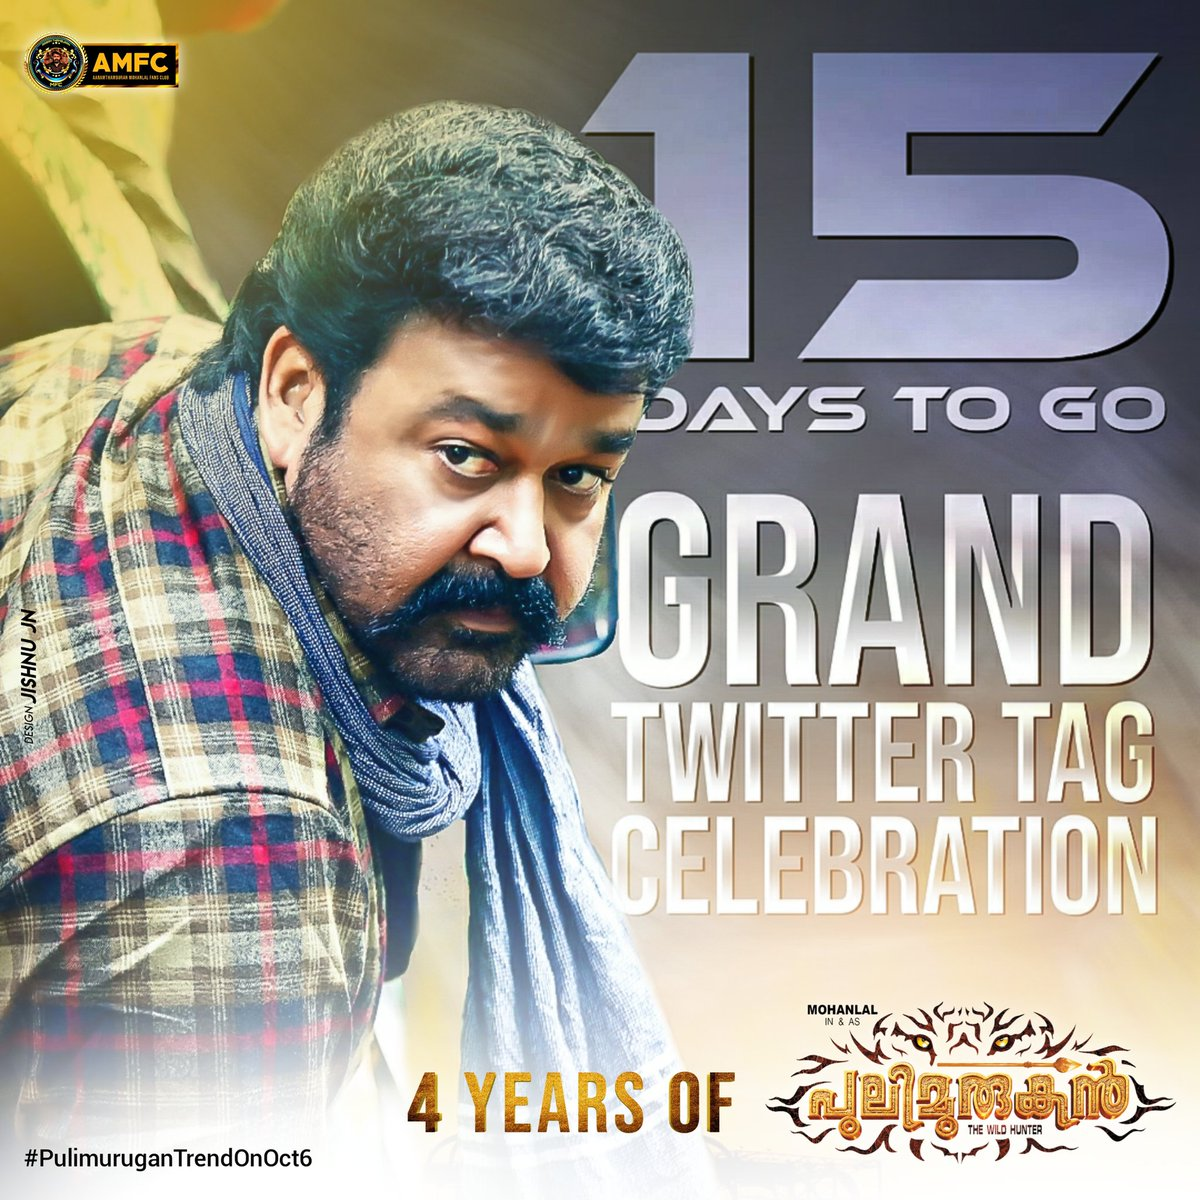 15 Days To Go 🤩  Get Ready For The Massive Hunt..!💪  The wait will be worth 😎  #PulimuruganTrendOnOct6 ⚡  @Mohanlal #Mohanlal #Lalettan #Drishyam2 https://t.co/SqyH6ejsqU